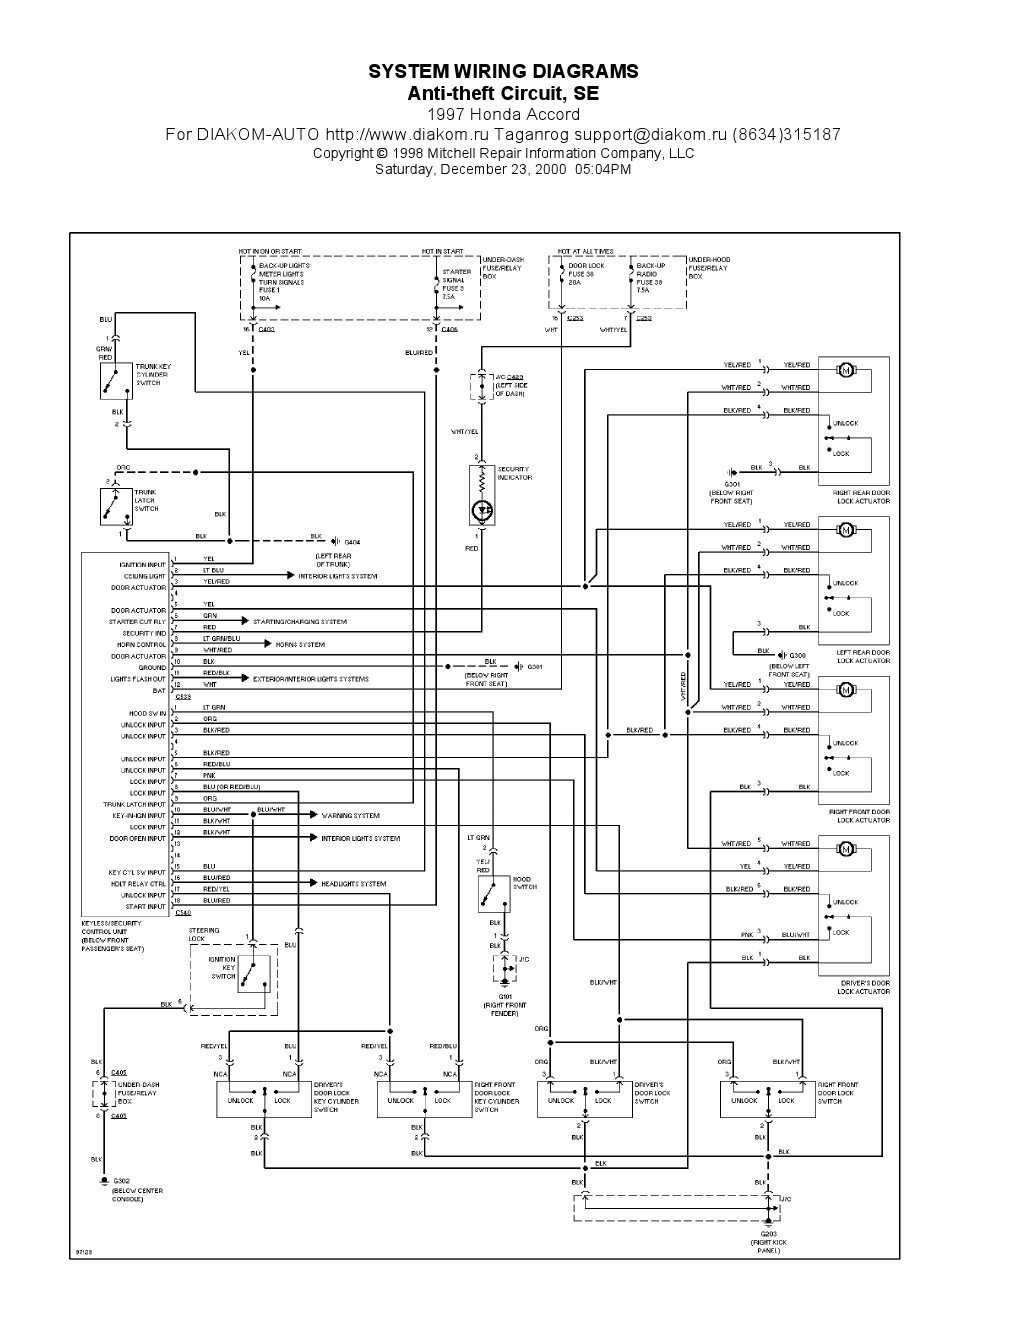 hight resolution of 97 honda accord wiring diagram wiring diagram post 1997 honda accord wiring diagram pdf 1997 honda accord diagram